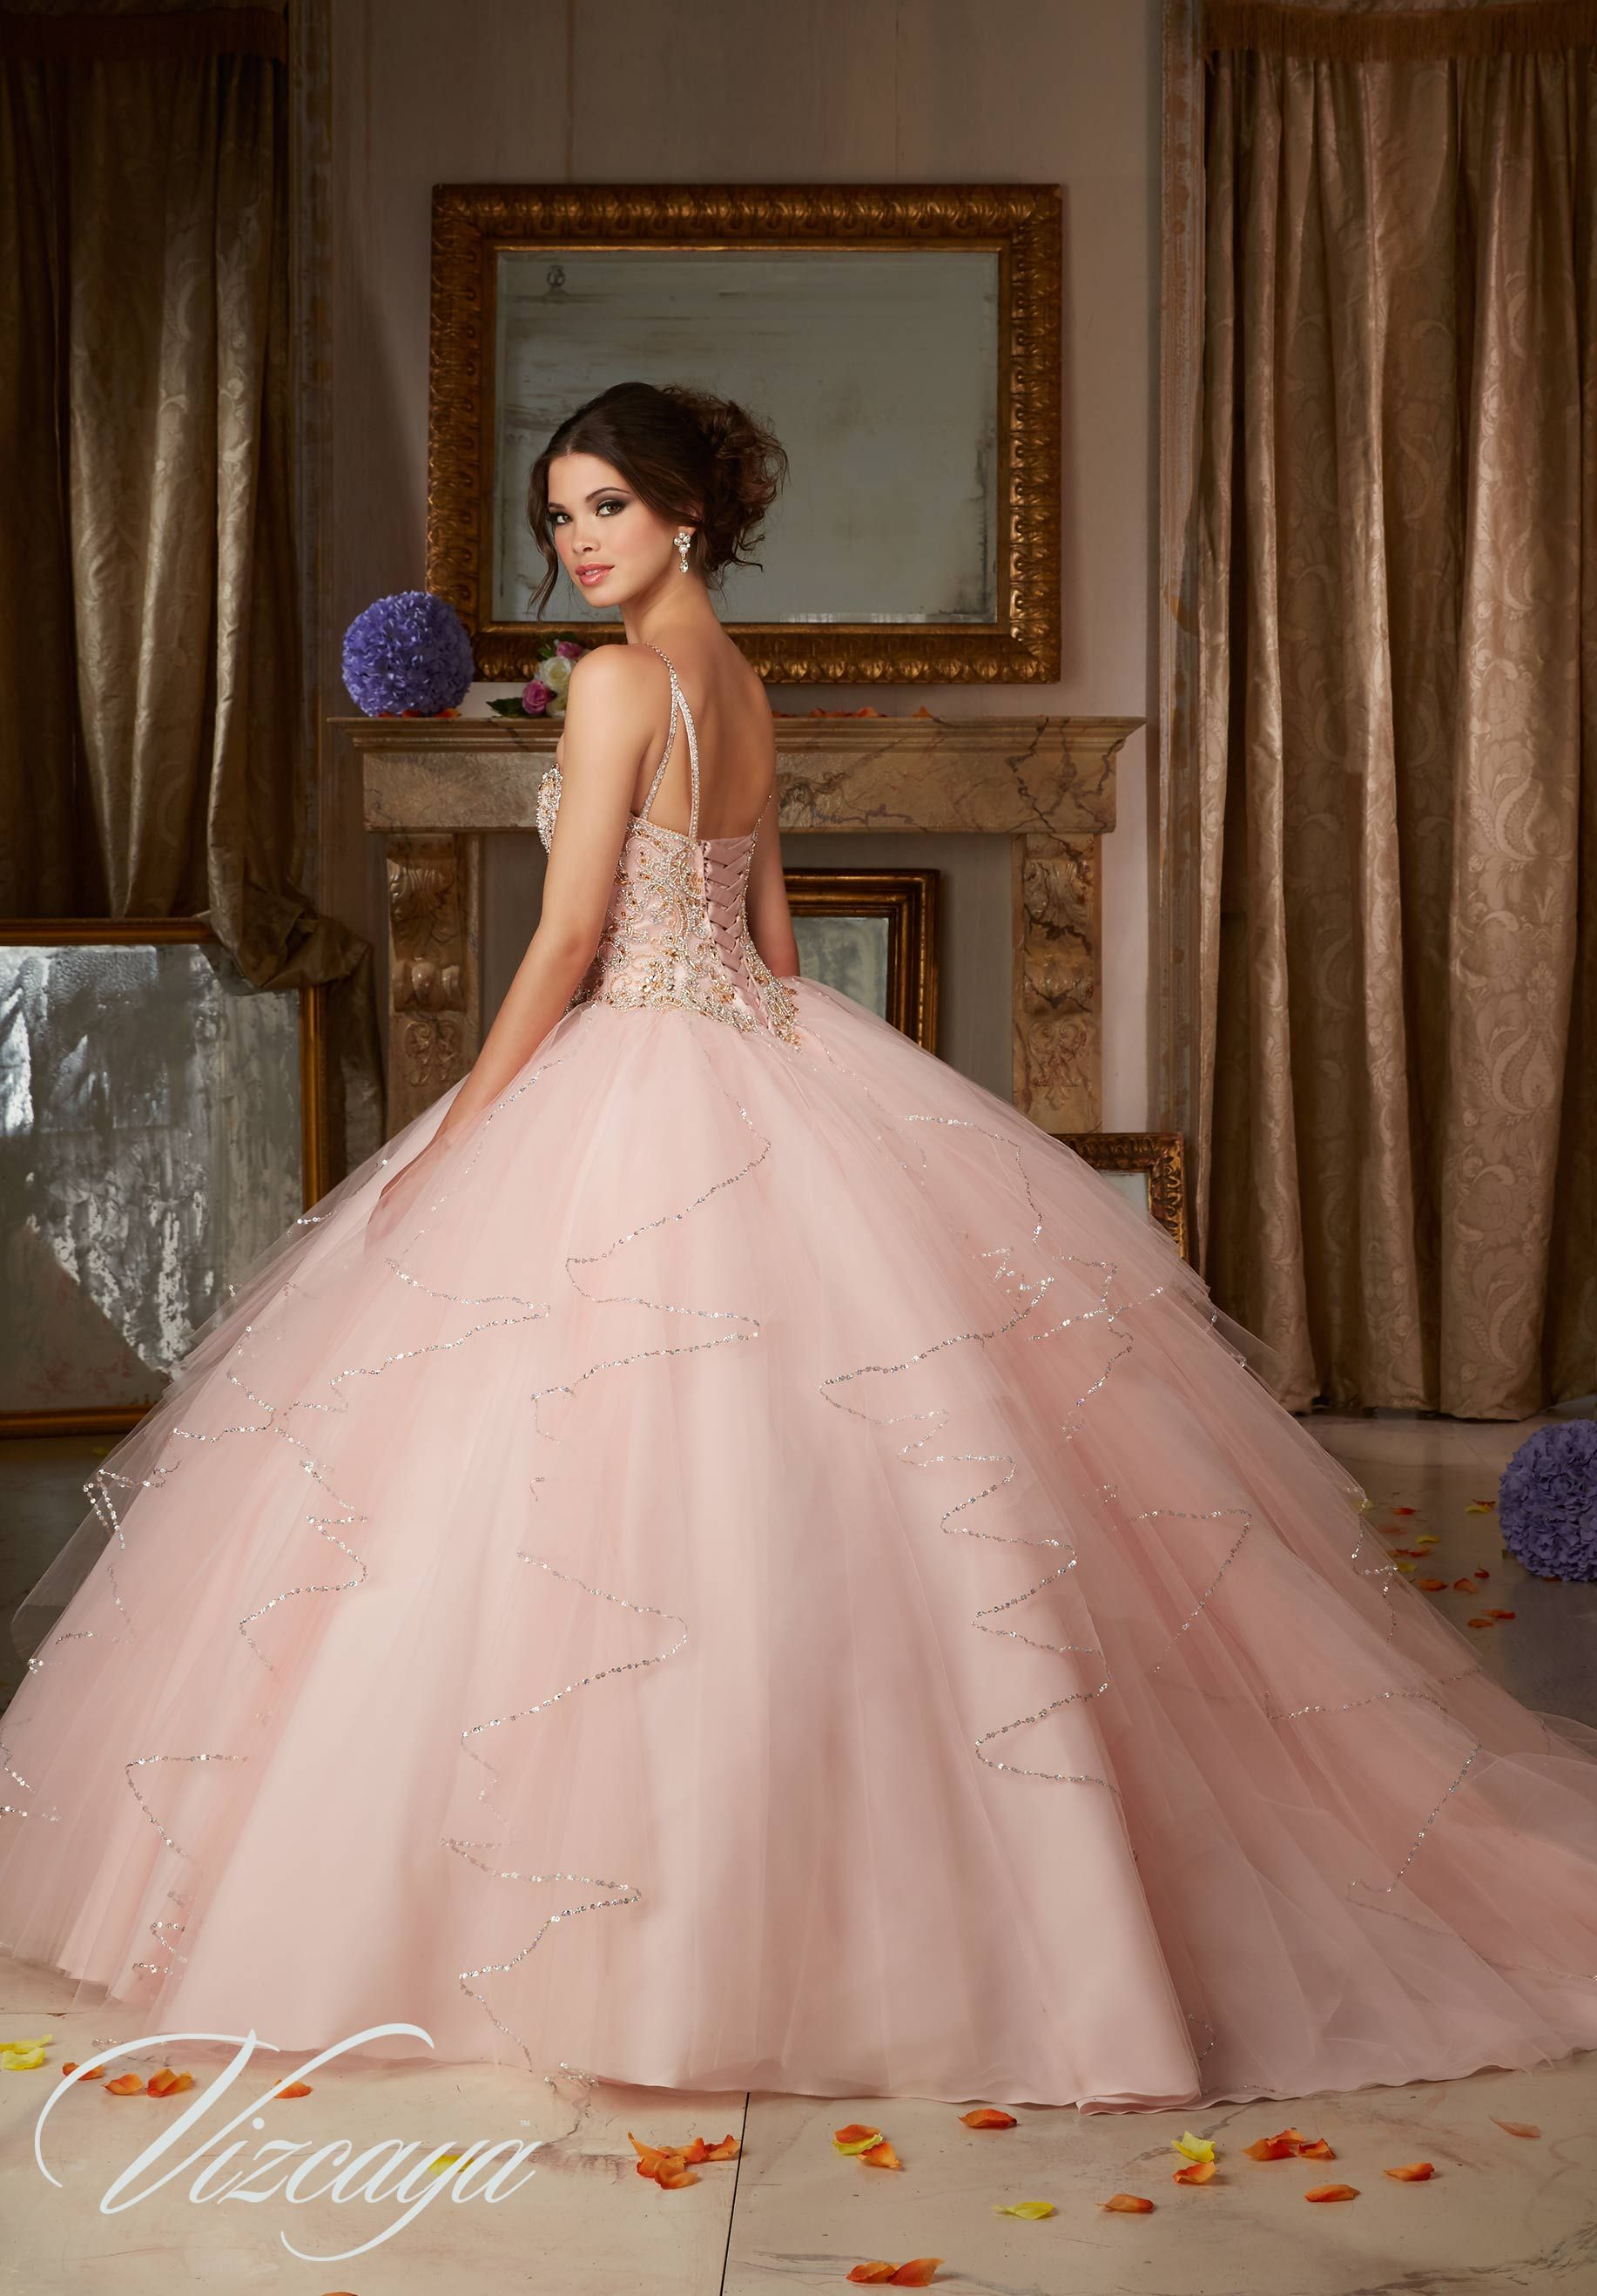 Quinceañera Ballgown featuring a Sweetheart Neckline and Corset Back ...